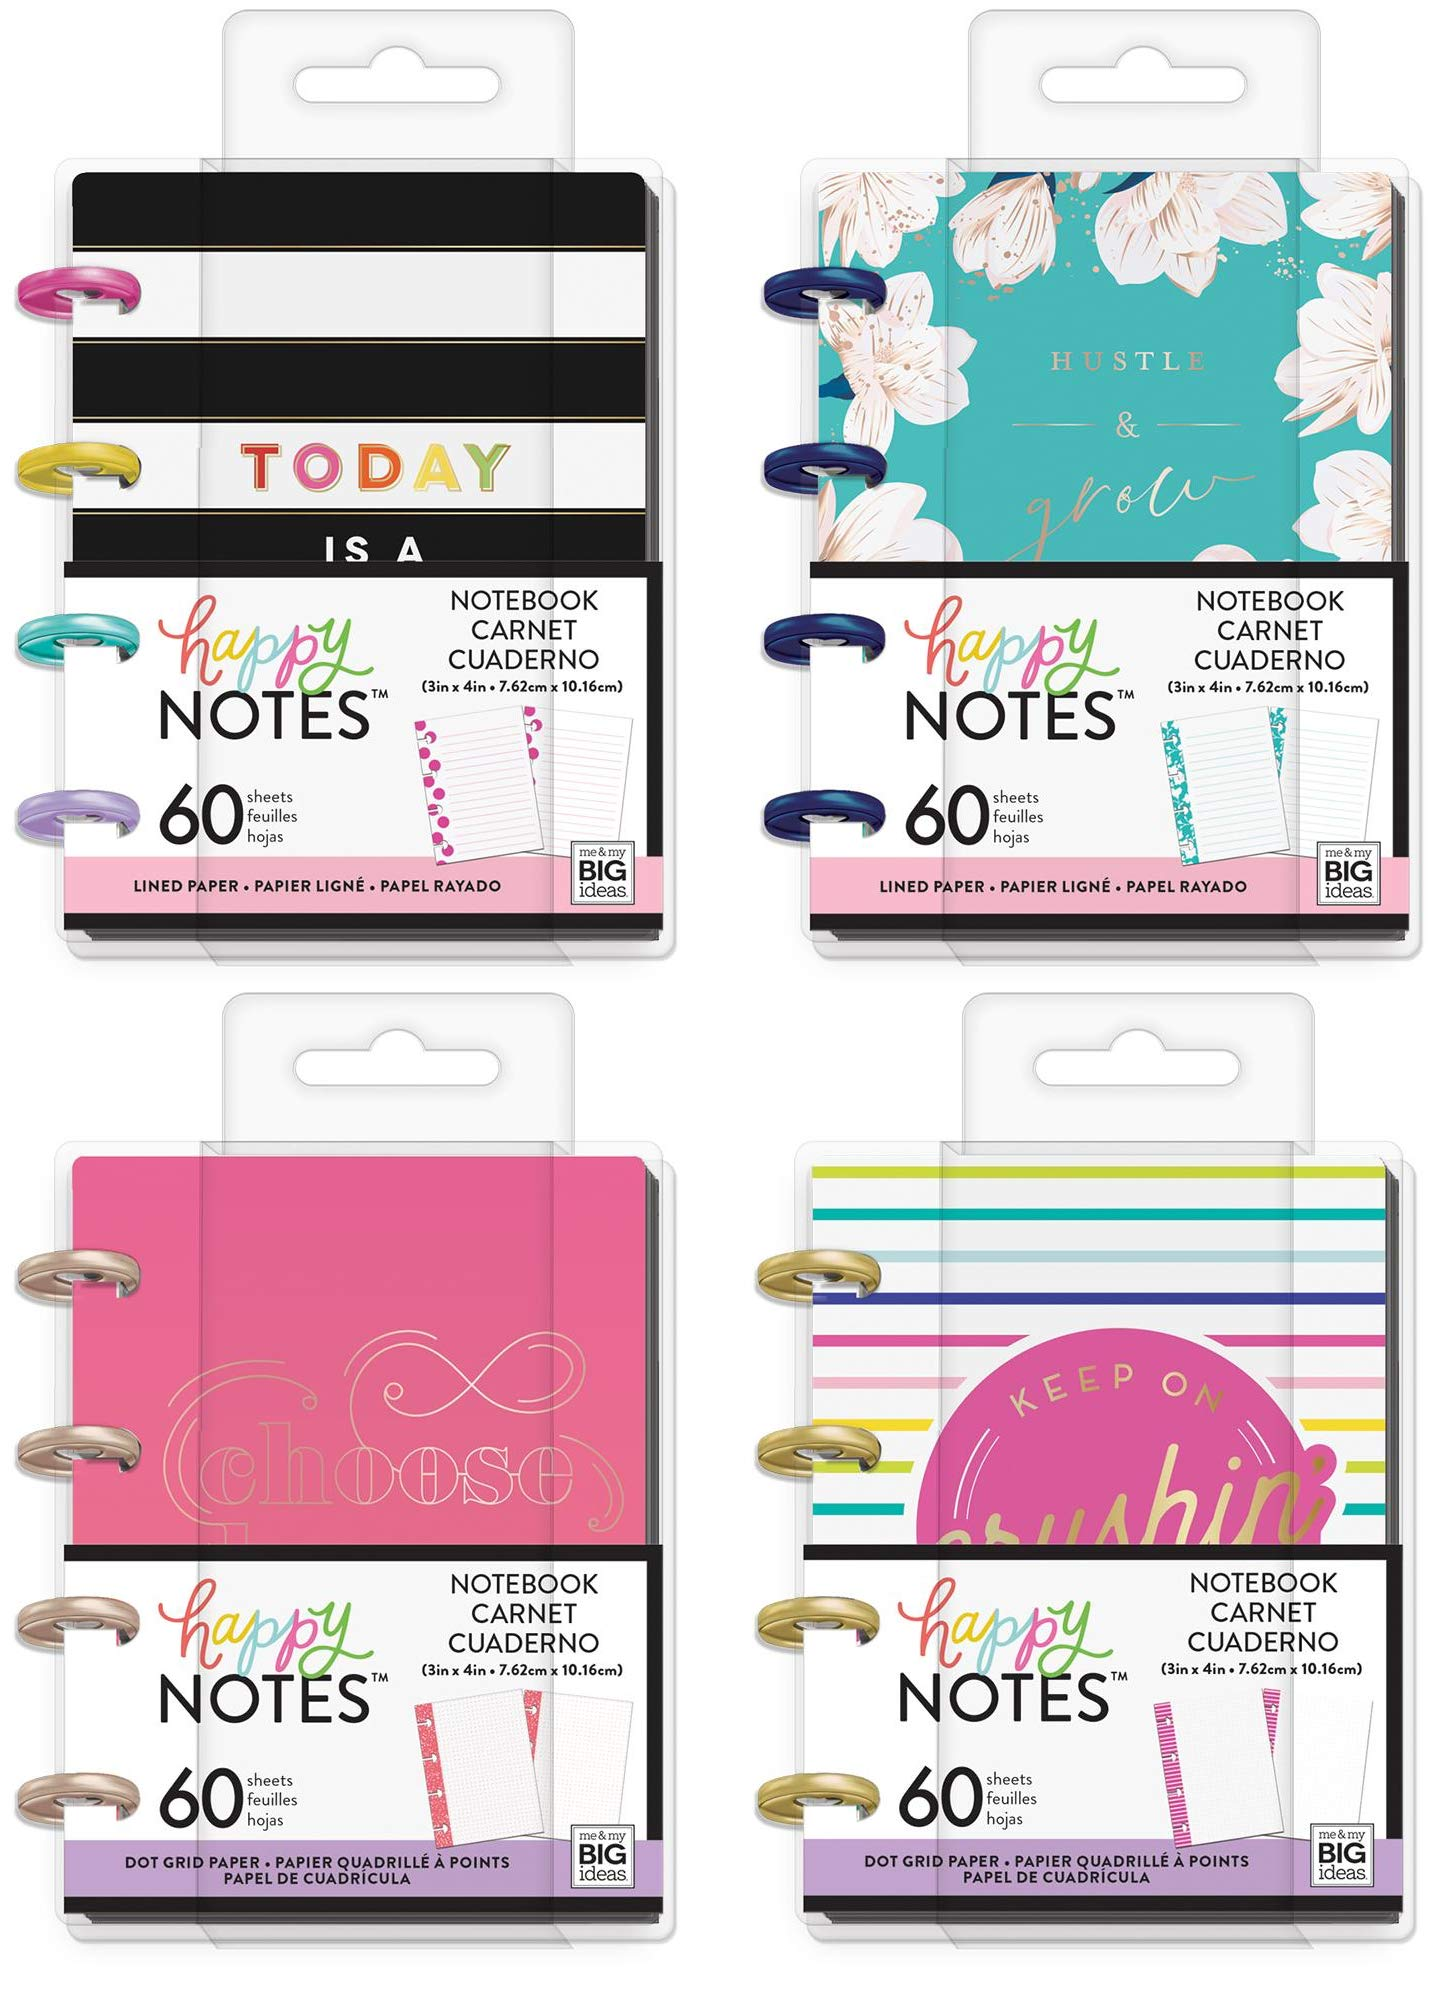 Micro Happy Notes 3 x 4 Inch Memo Books - Southern Preppy, Today is A Gift, Bright Crushin' and Choose Happy - 4 MAMBI Keepsake Items